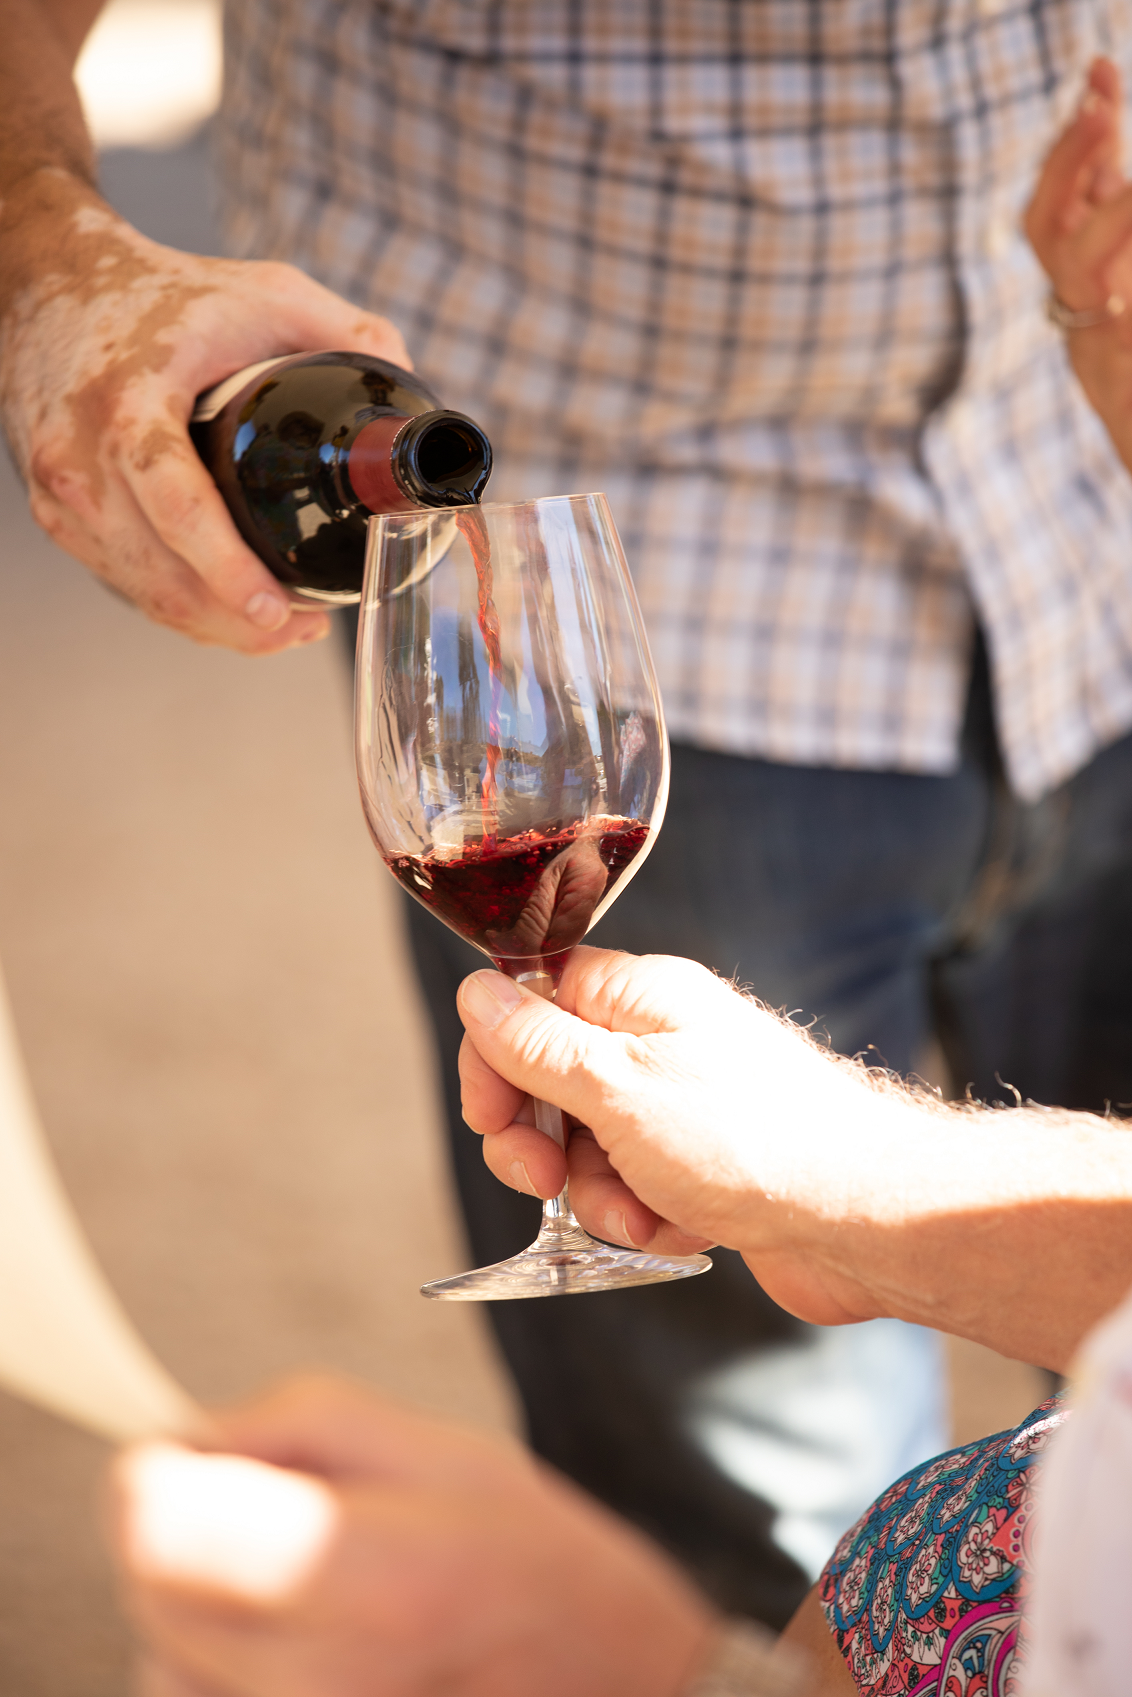 A person pours red wine from a bottle into a waiting glass